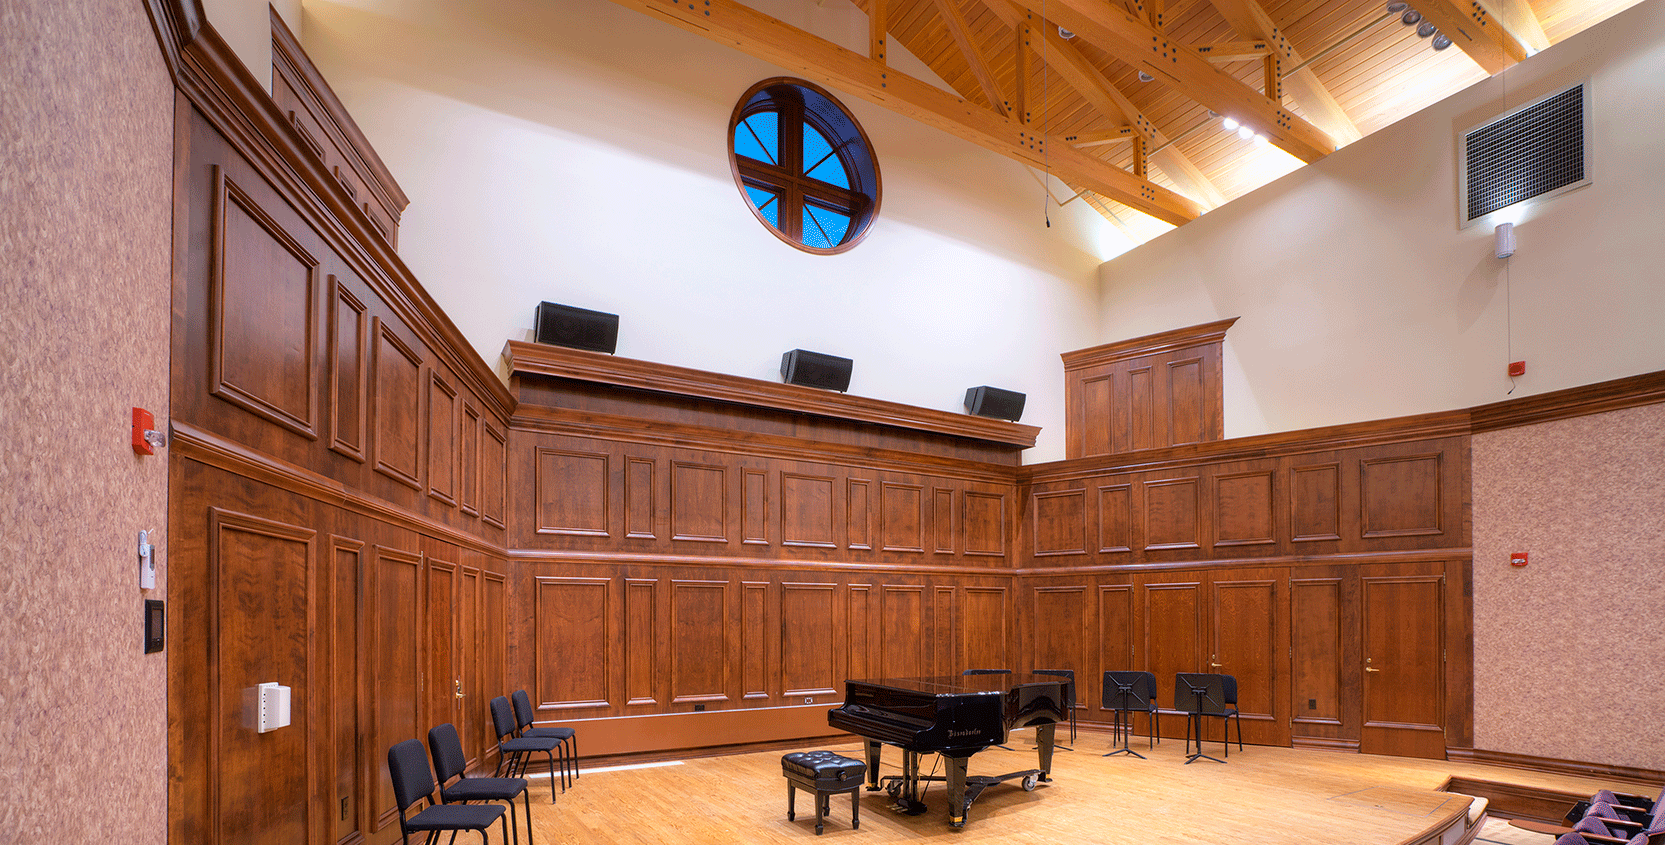 Hillsdale-College-John-and-Dede-Howard-Music-Hall-Renovation-3-1665x845